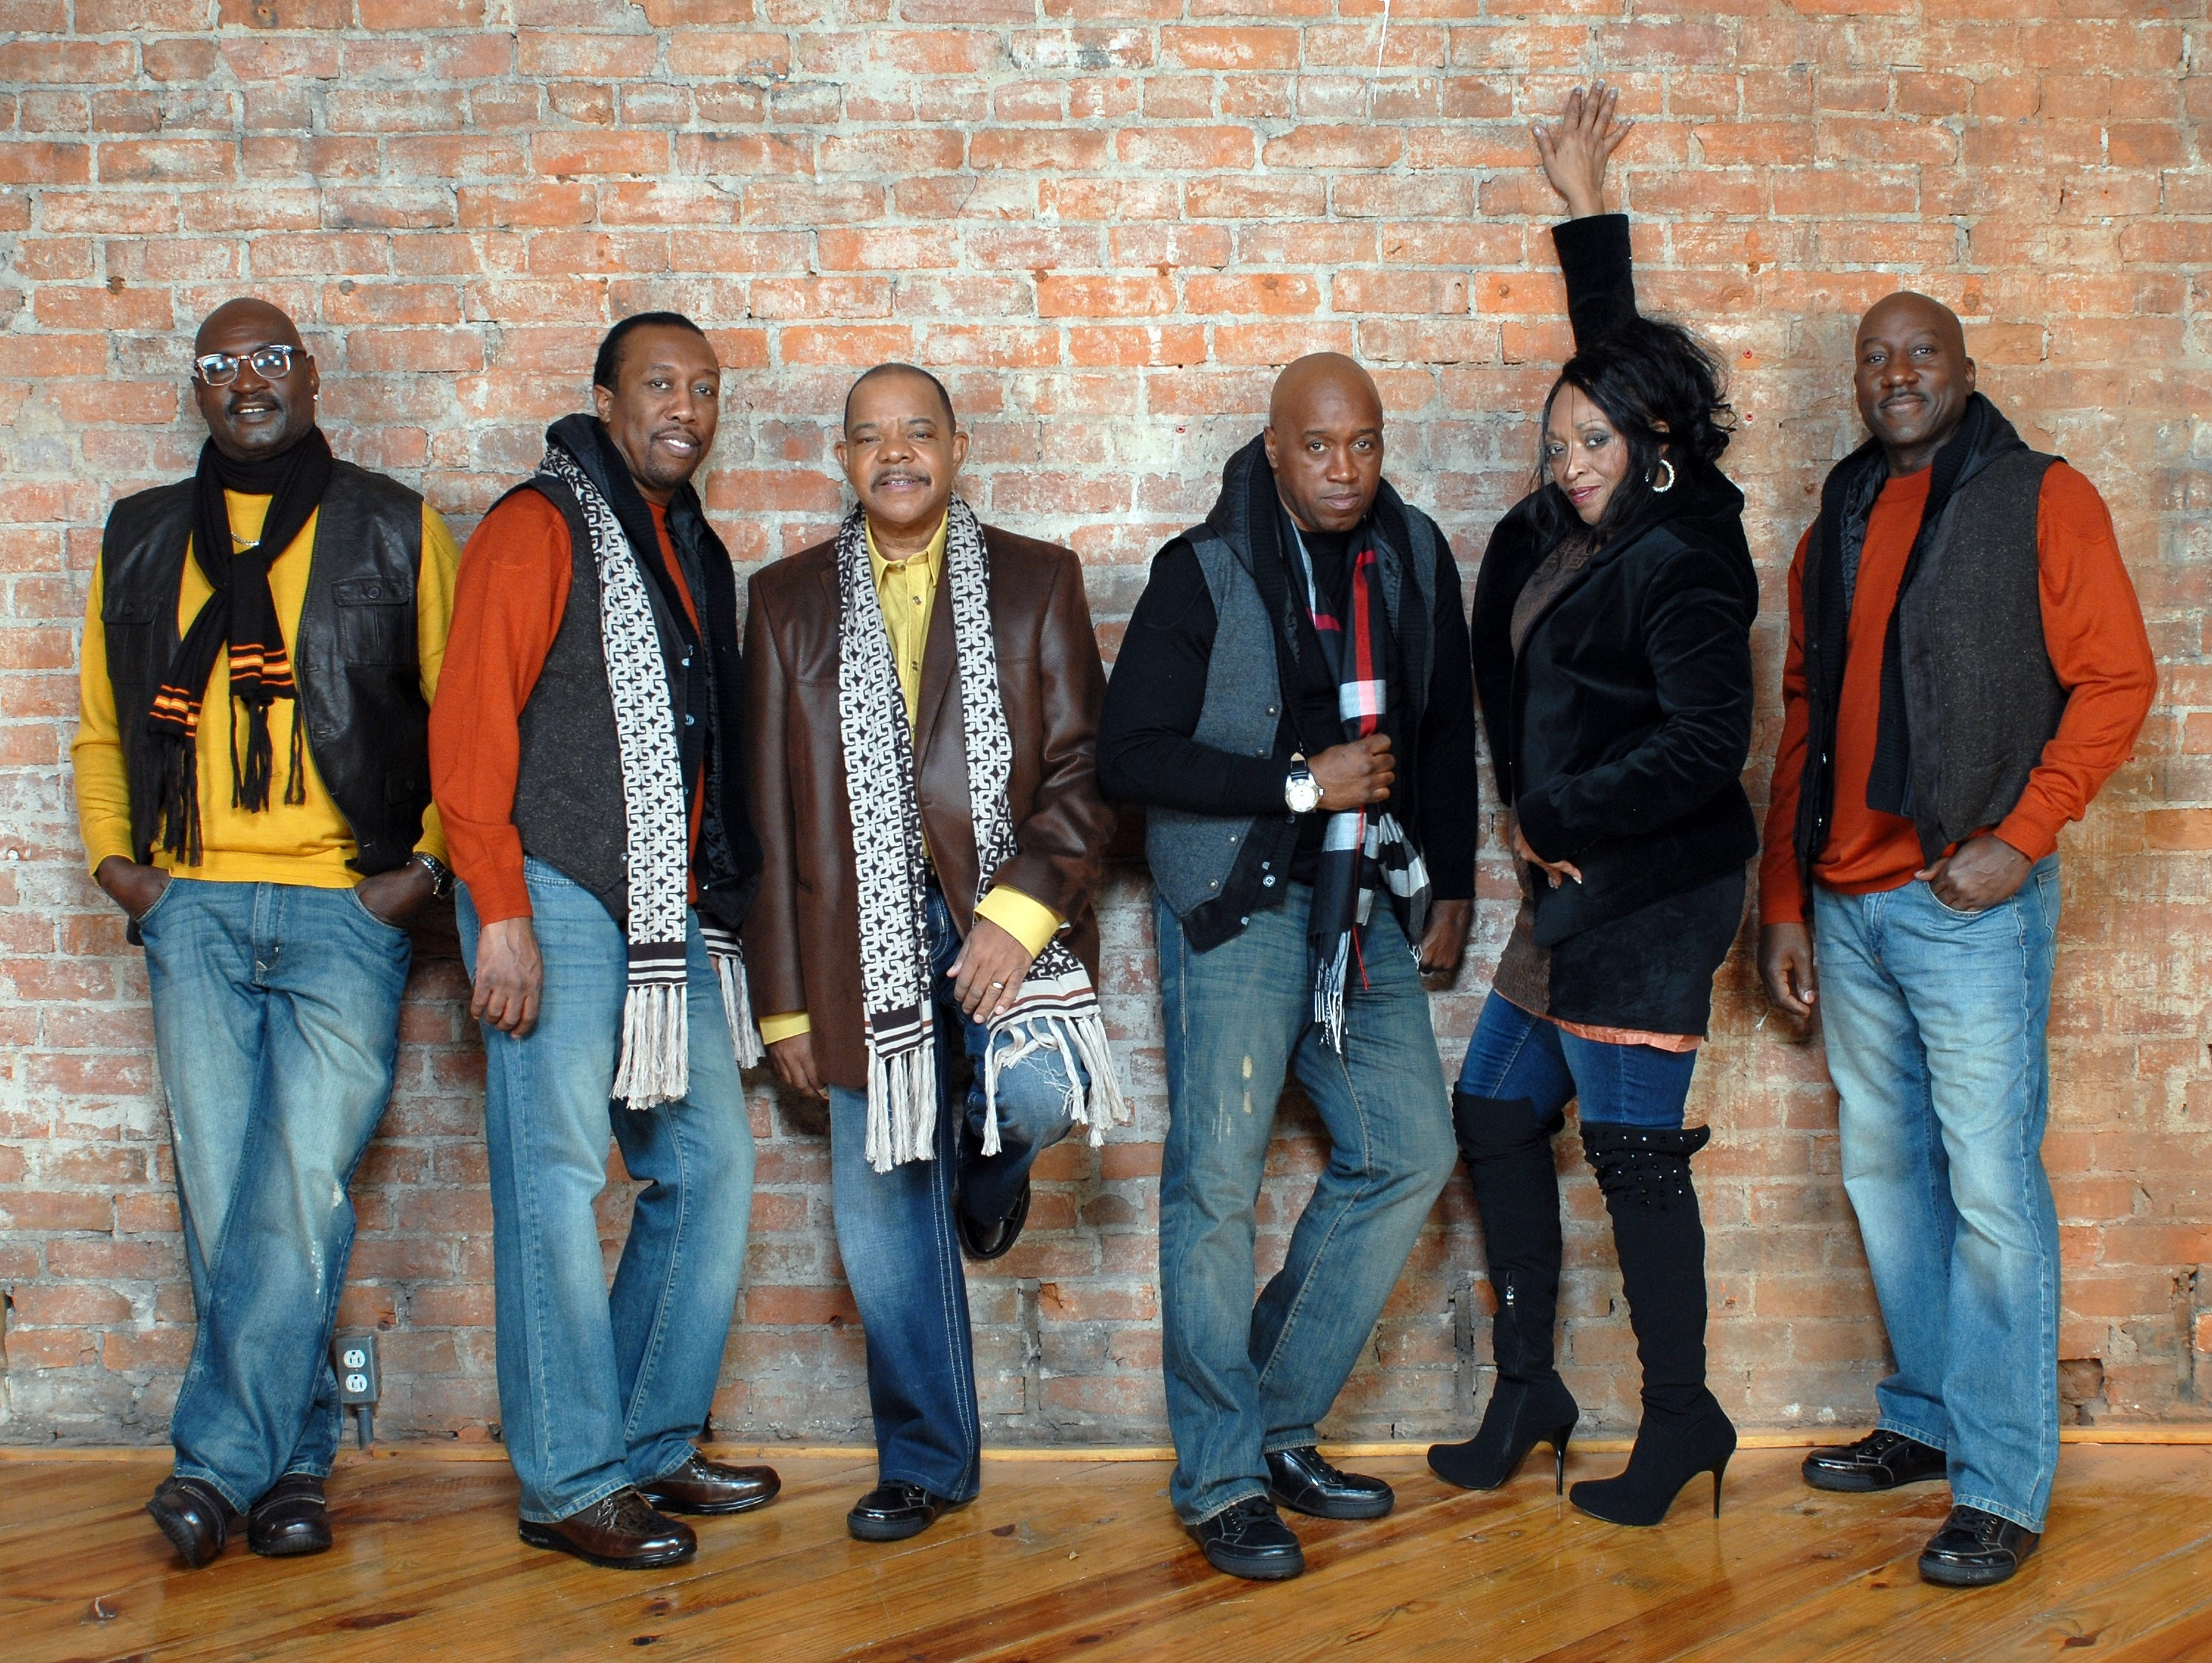 Provided Kentucky?s own Midnight Star will perform a free concert along with Rose Royce during Kentucky Derby Festival?s Waterfront Jam.